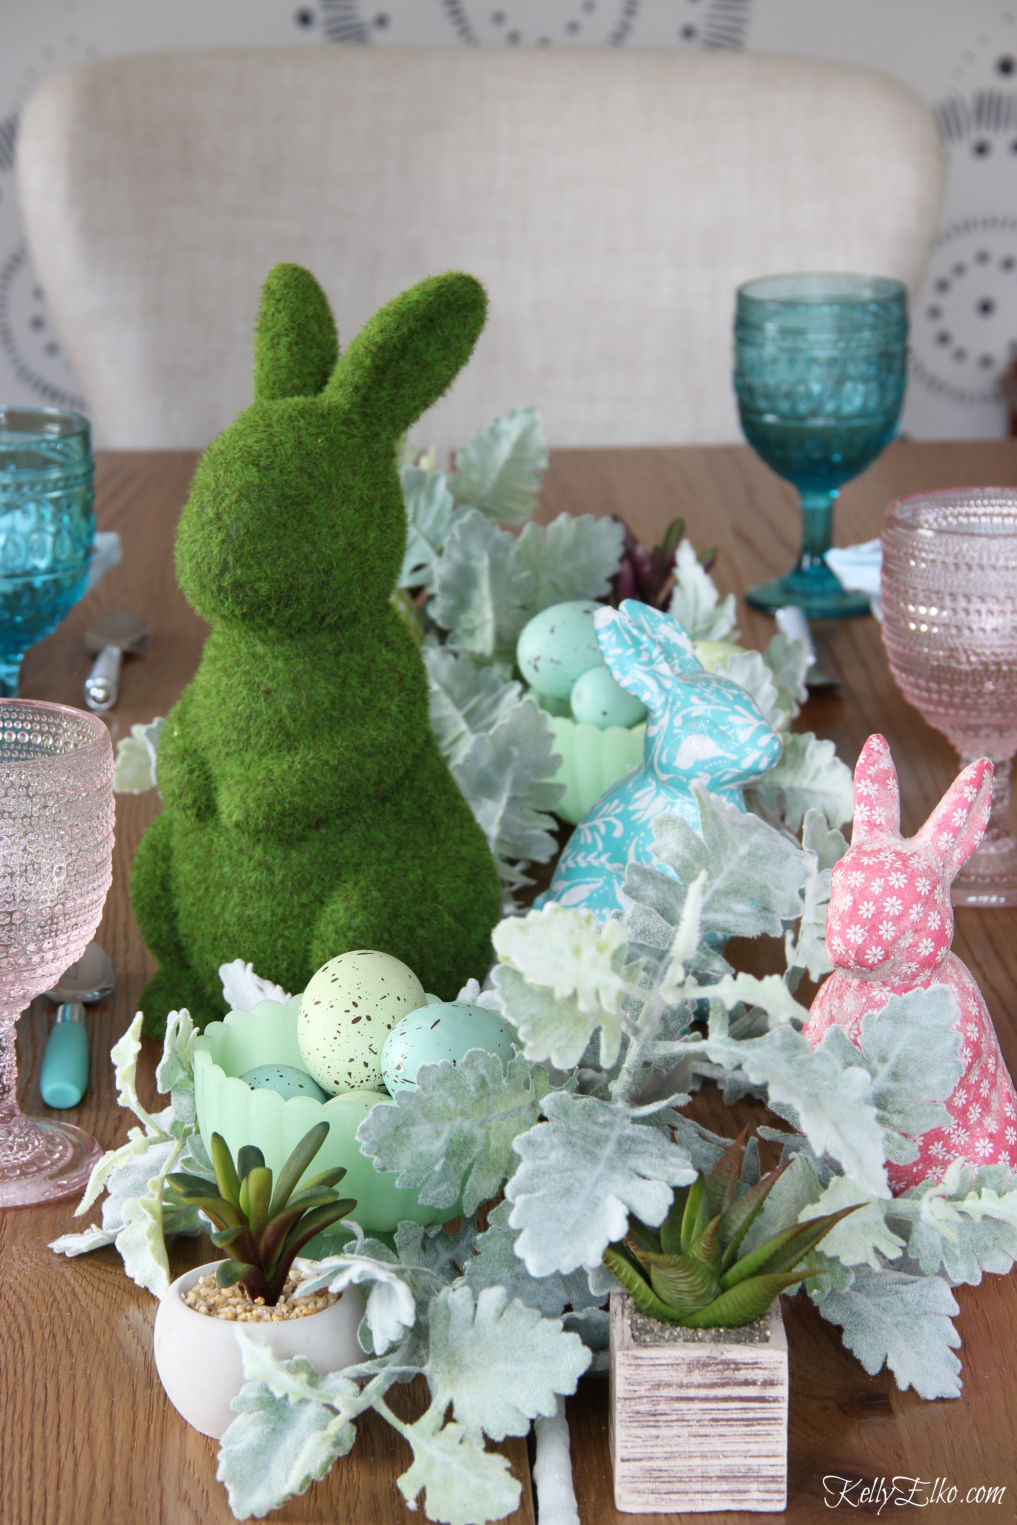 Love this cute spring bunny centerpiece with branches, succulents and bunnies kellyelko.com #springdecor #springcenterepiece #springtable #eastertable #eastercenterpiece #easterbunny